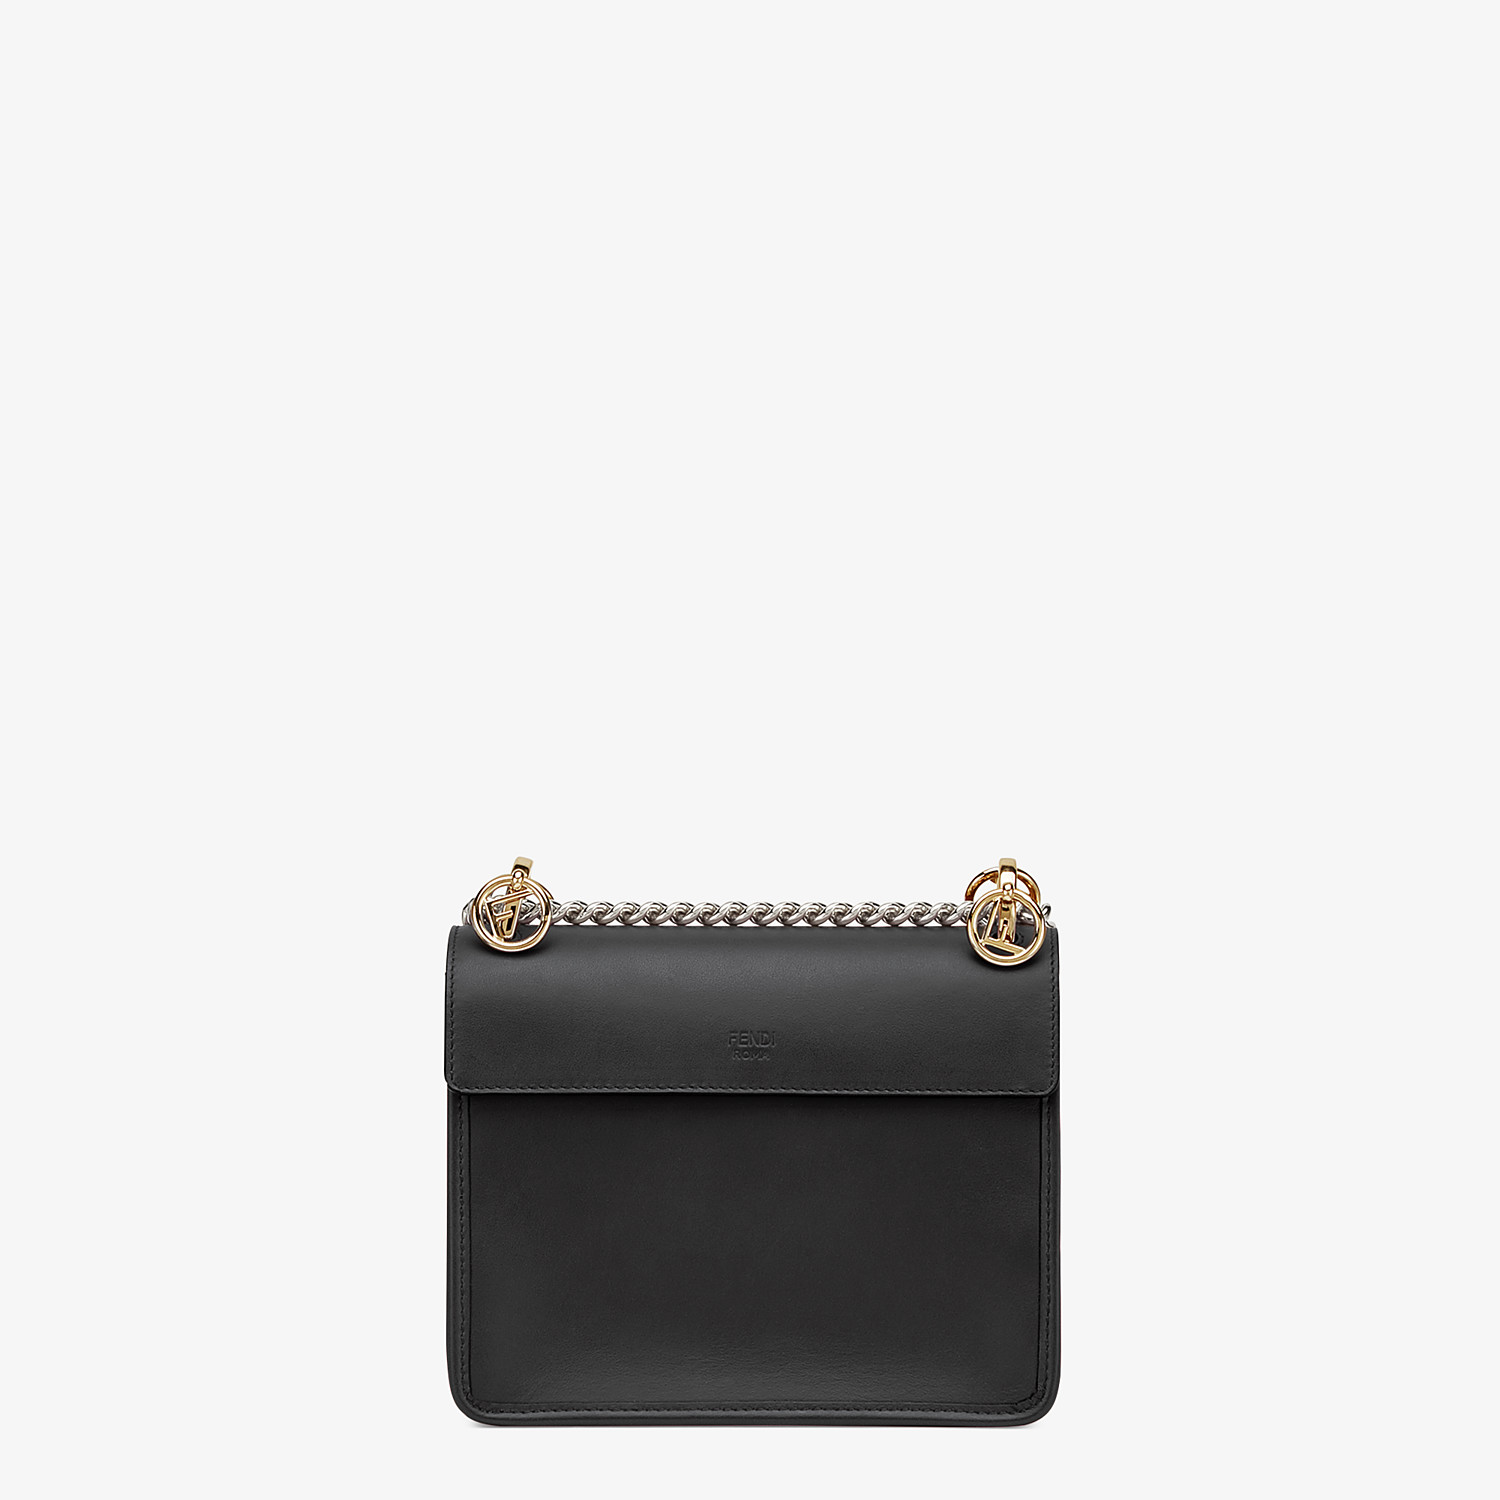 FENDI KAN I F SMALL - Black leather mini-bag - view 4 detail